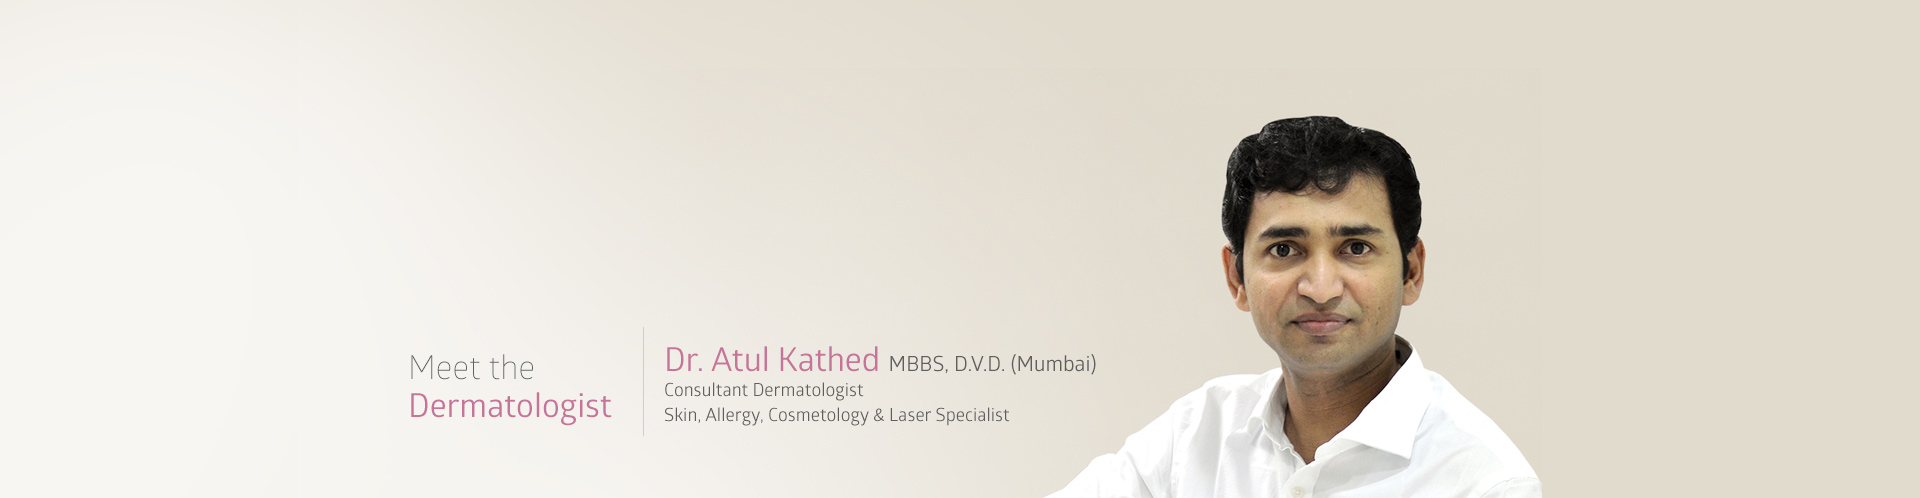 Meet-the-Dermat-about-dr-atul-kathed-indore